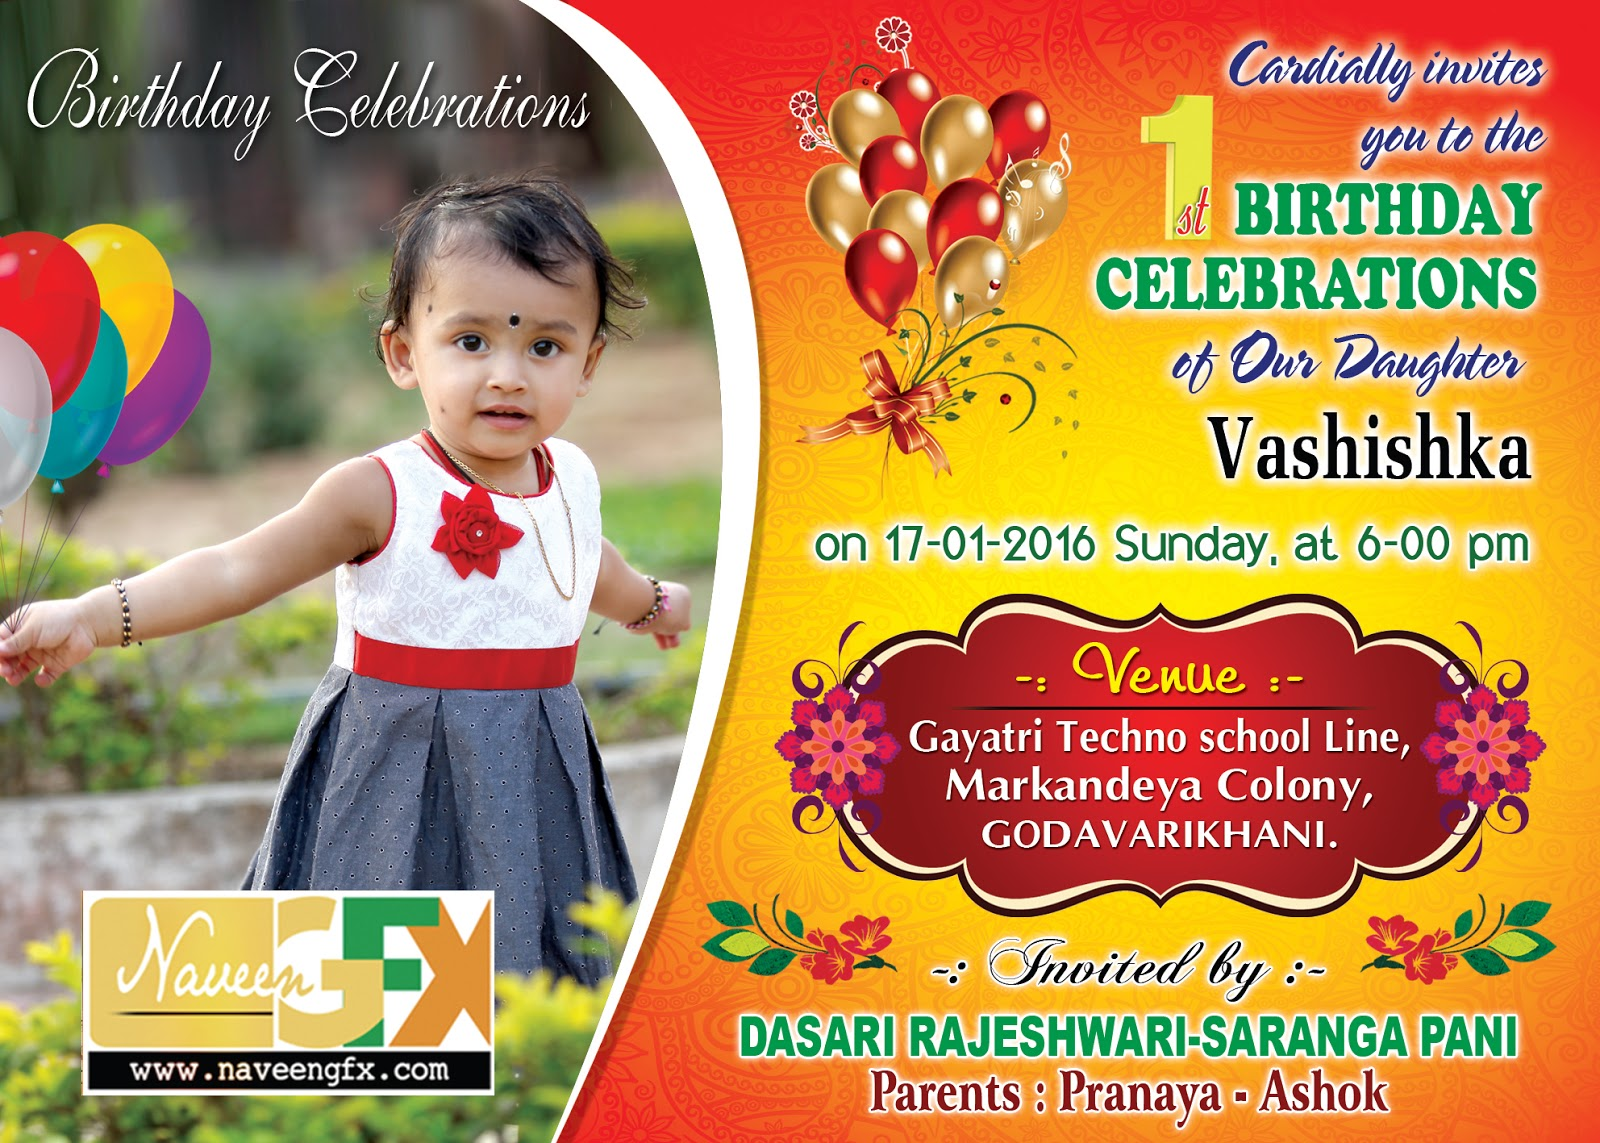 download birthday invitation card template ; birthday-invitation-card-design-free-download-beautiful-inviting-cards-for-a-birthday-15-about-remodel-diwali-invitation-cards-with-inviting-cards-for-a-birthday-4